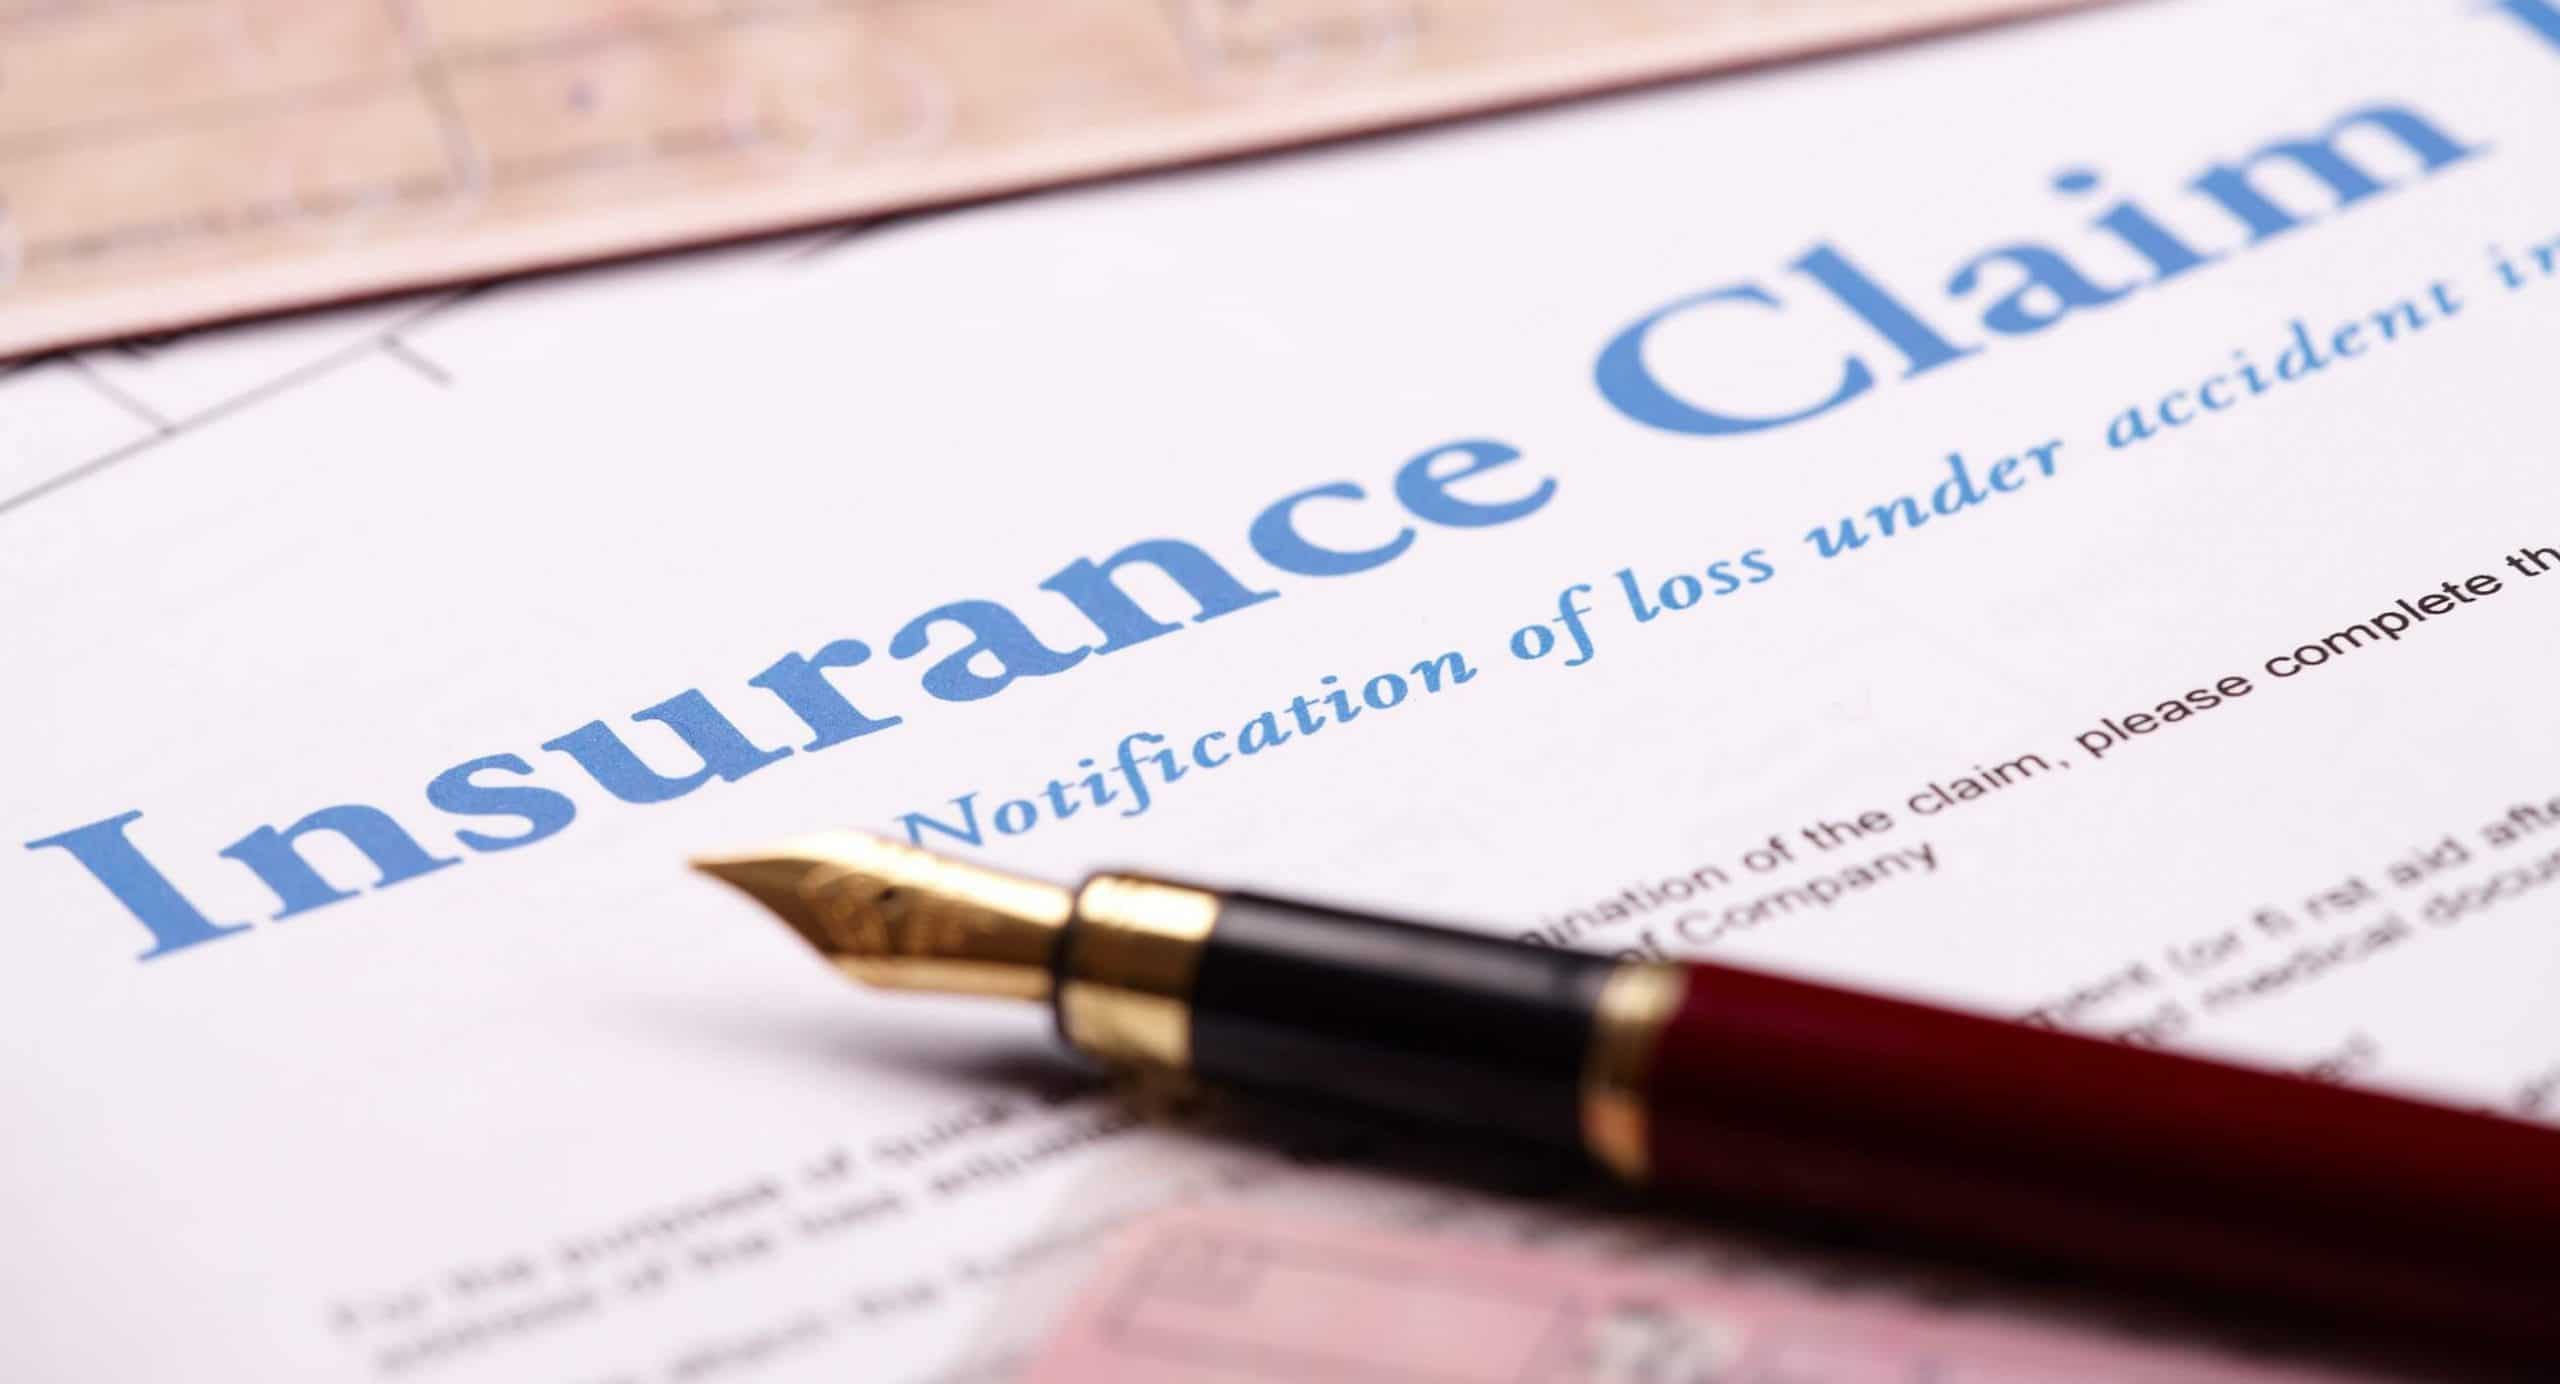 Blank insurance claim form and papers